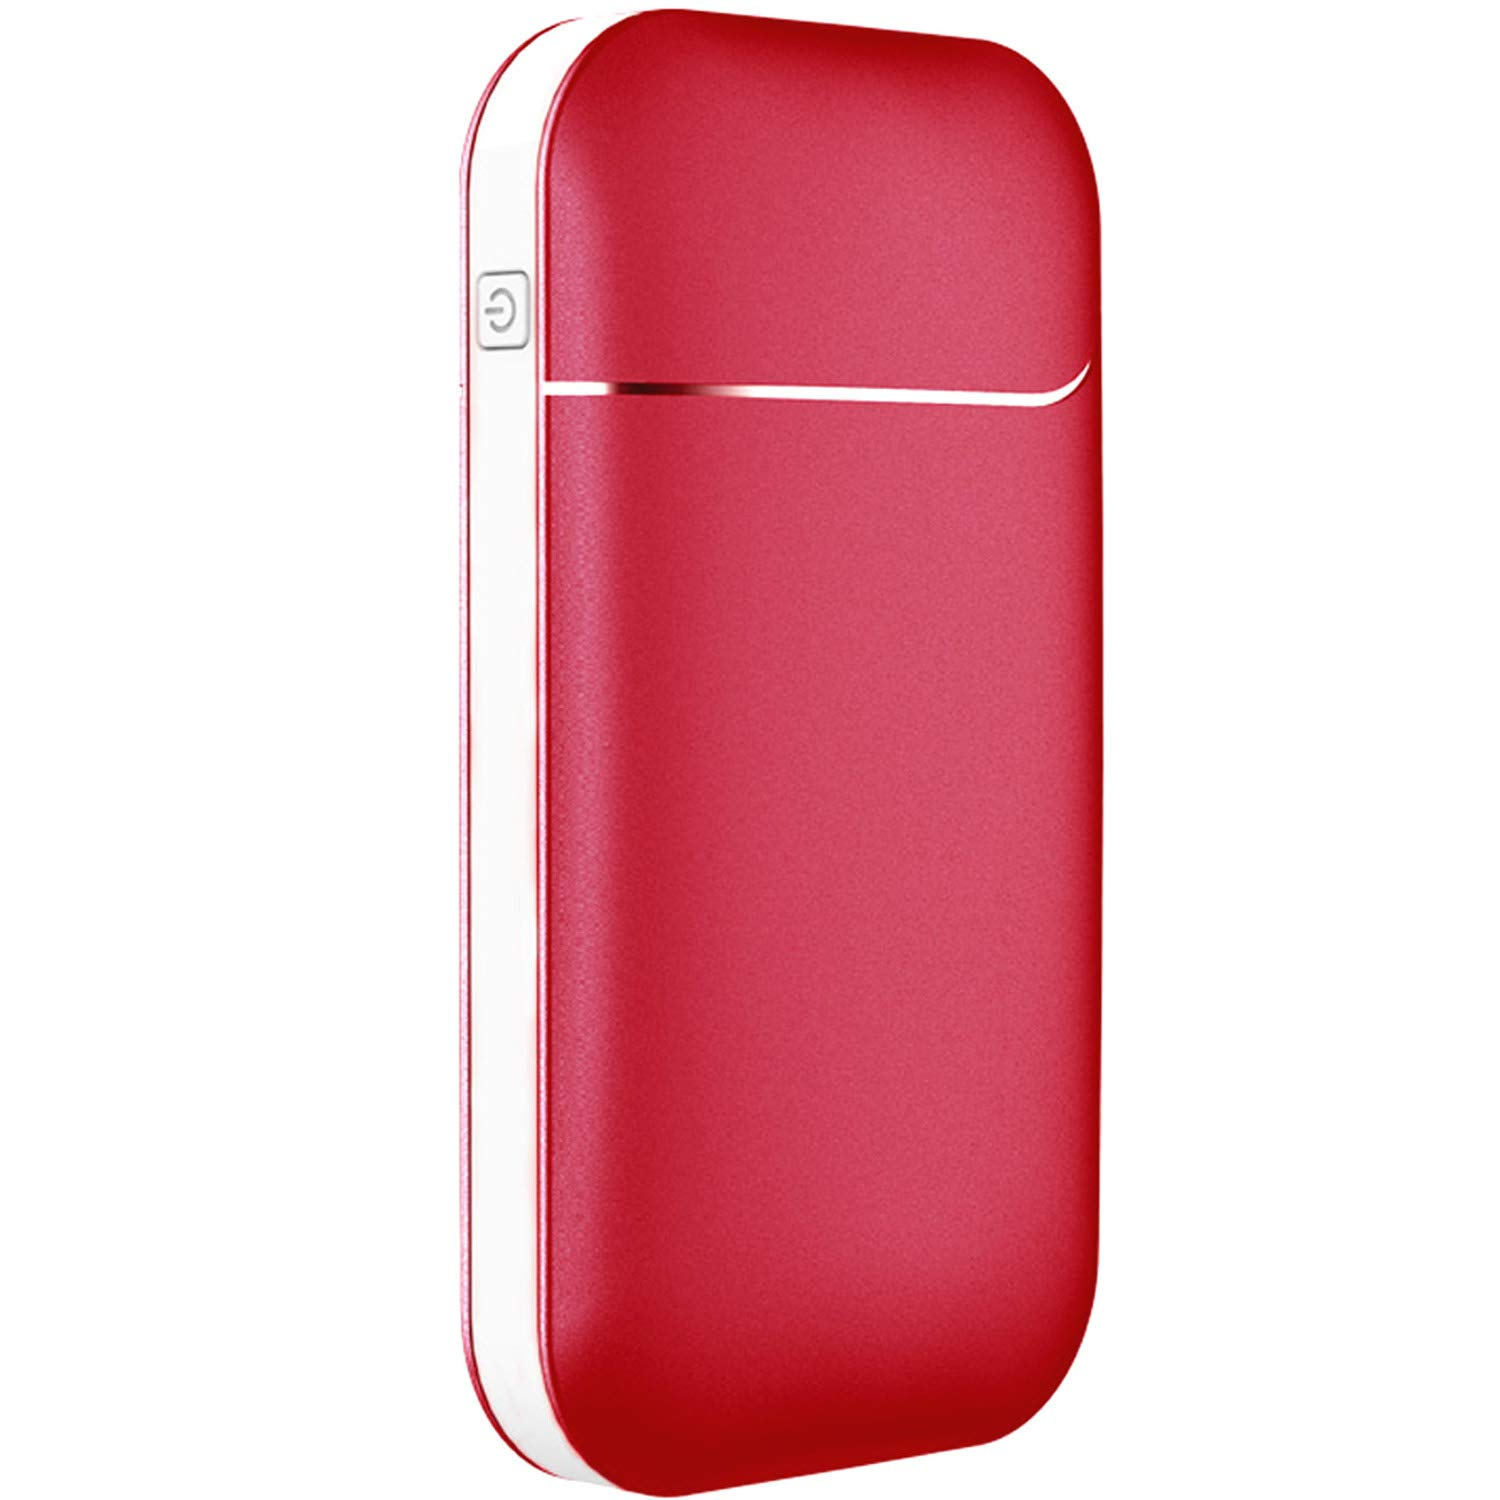 Rechargeable Hand Warmer 7800mAh Electronic Portable Instant Heating / USB Back-up Power Back Battery For Samsung.iPhone